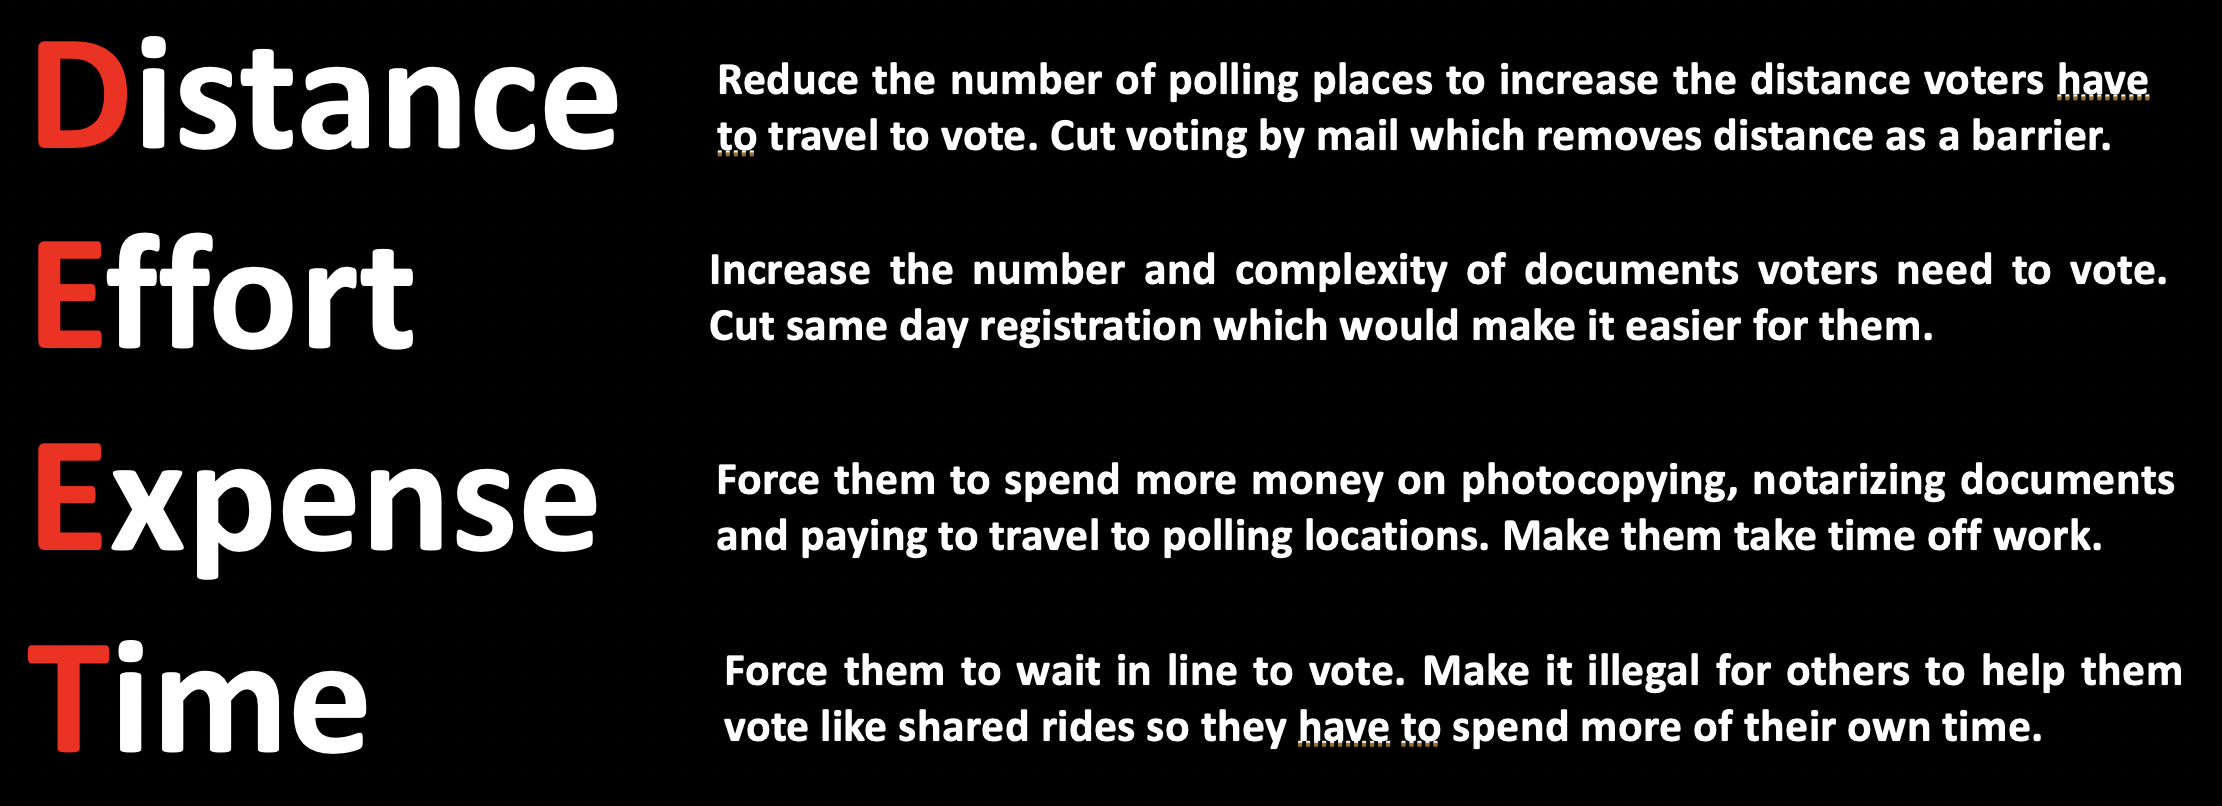 New voter suppression measures raise the cost of voting by increasing the distance, effort, expense and time voters have to pay.